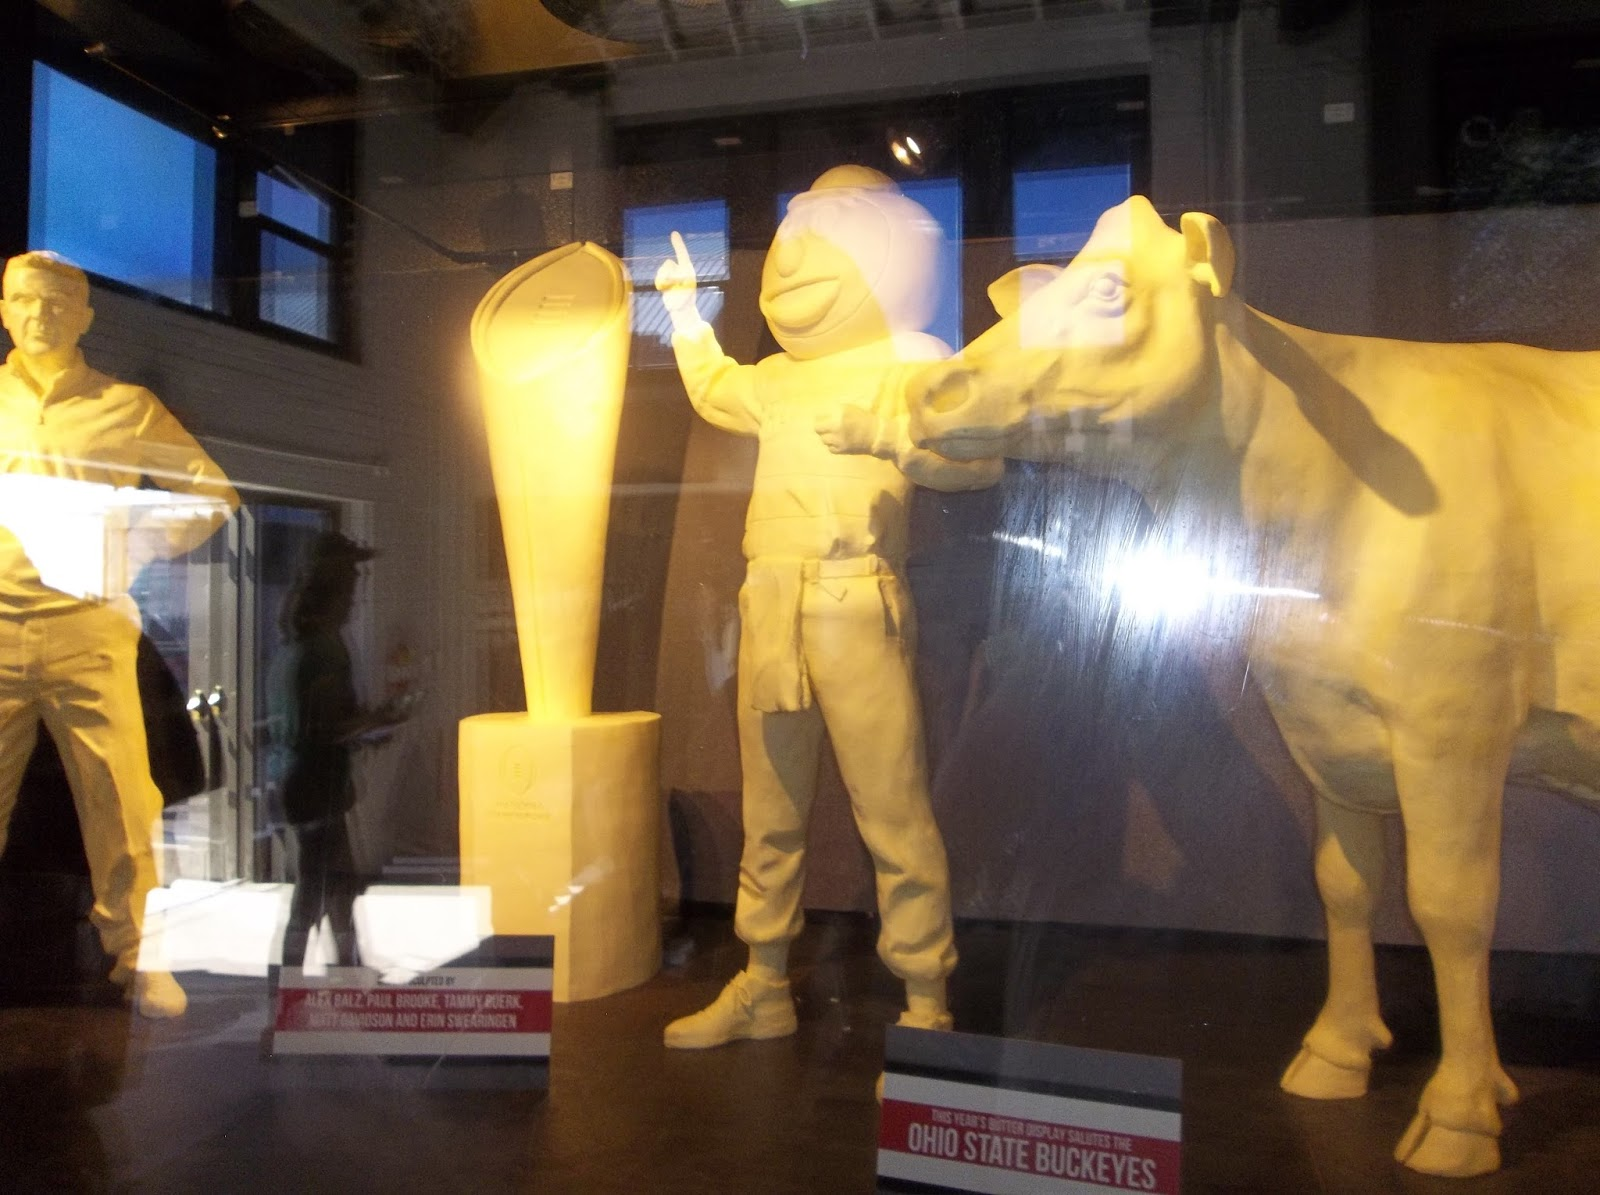 Ohio state university brutus buckeye statue - The Butter Cows And Other Butter Sculptures Ohio State University Buckeyes Was The Theme This Year Even Have A Butter Brutus Buckeye Sculptor